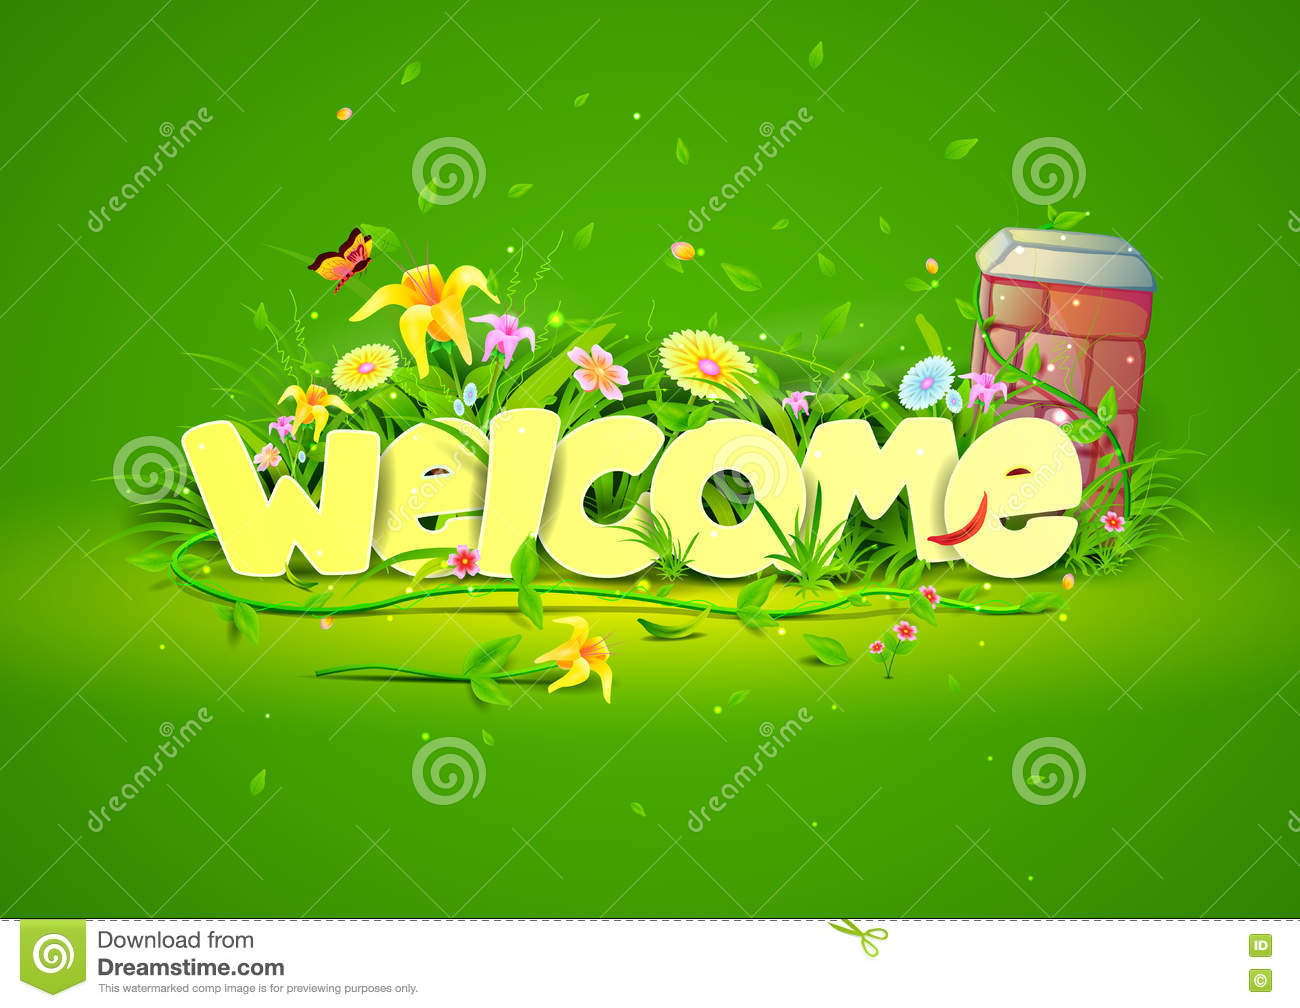 welcome wallpaper stock illustrations 6 941 welcome wallpaper stock illustrations vectors clipart dreamstime dreamstime com